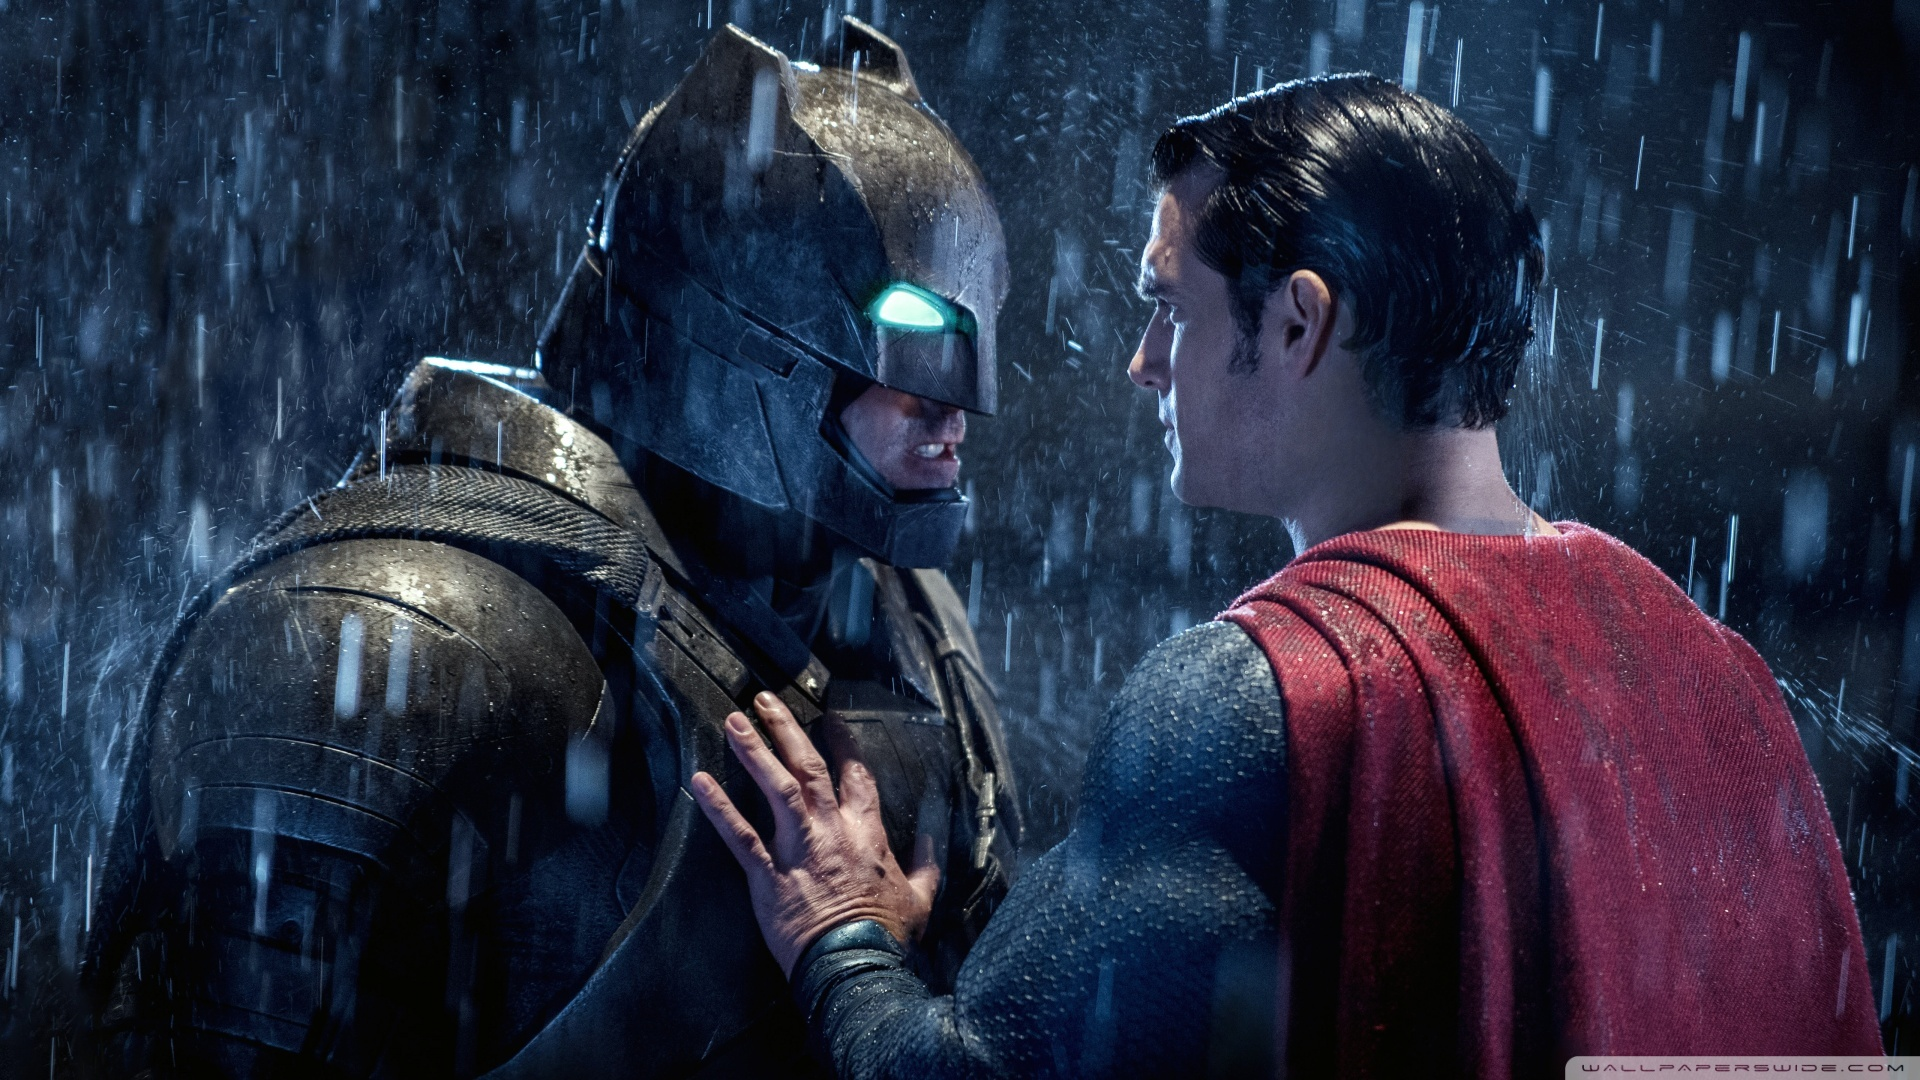 Batman-Superman-Face-Off-Hd-1920x1080-Need-iPhone-S-Plus-Background-for-wallpaper-wpc5802529